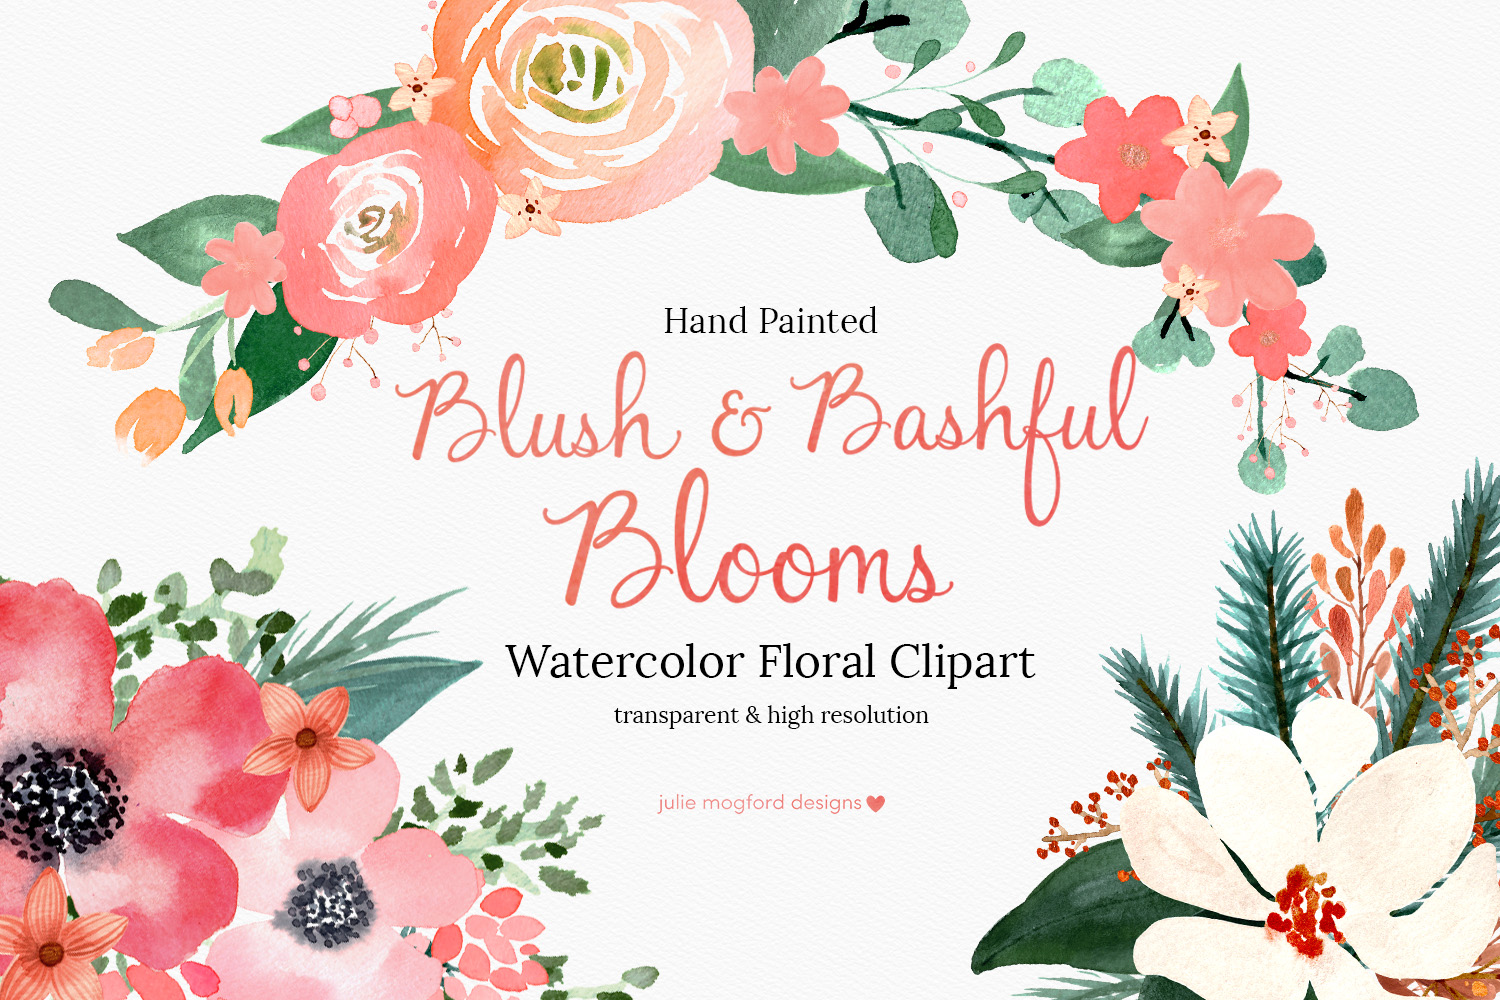 Blush bashful blooms watercolor floral clipart julie - High resolution watercolor flowers ...